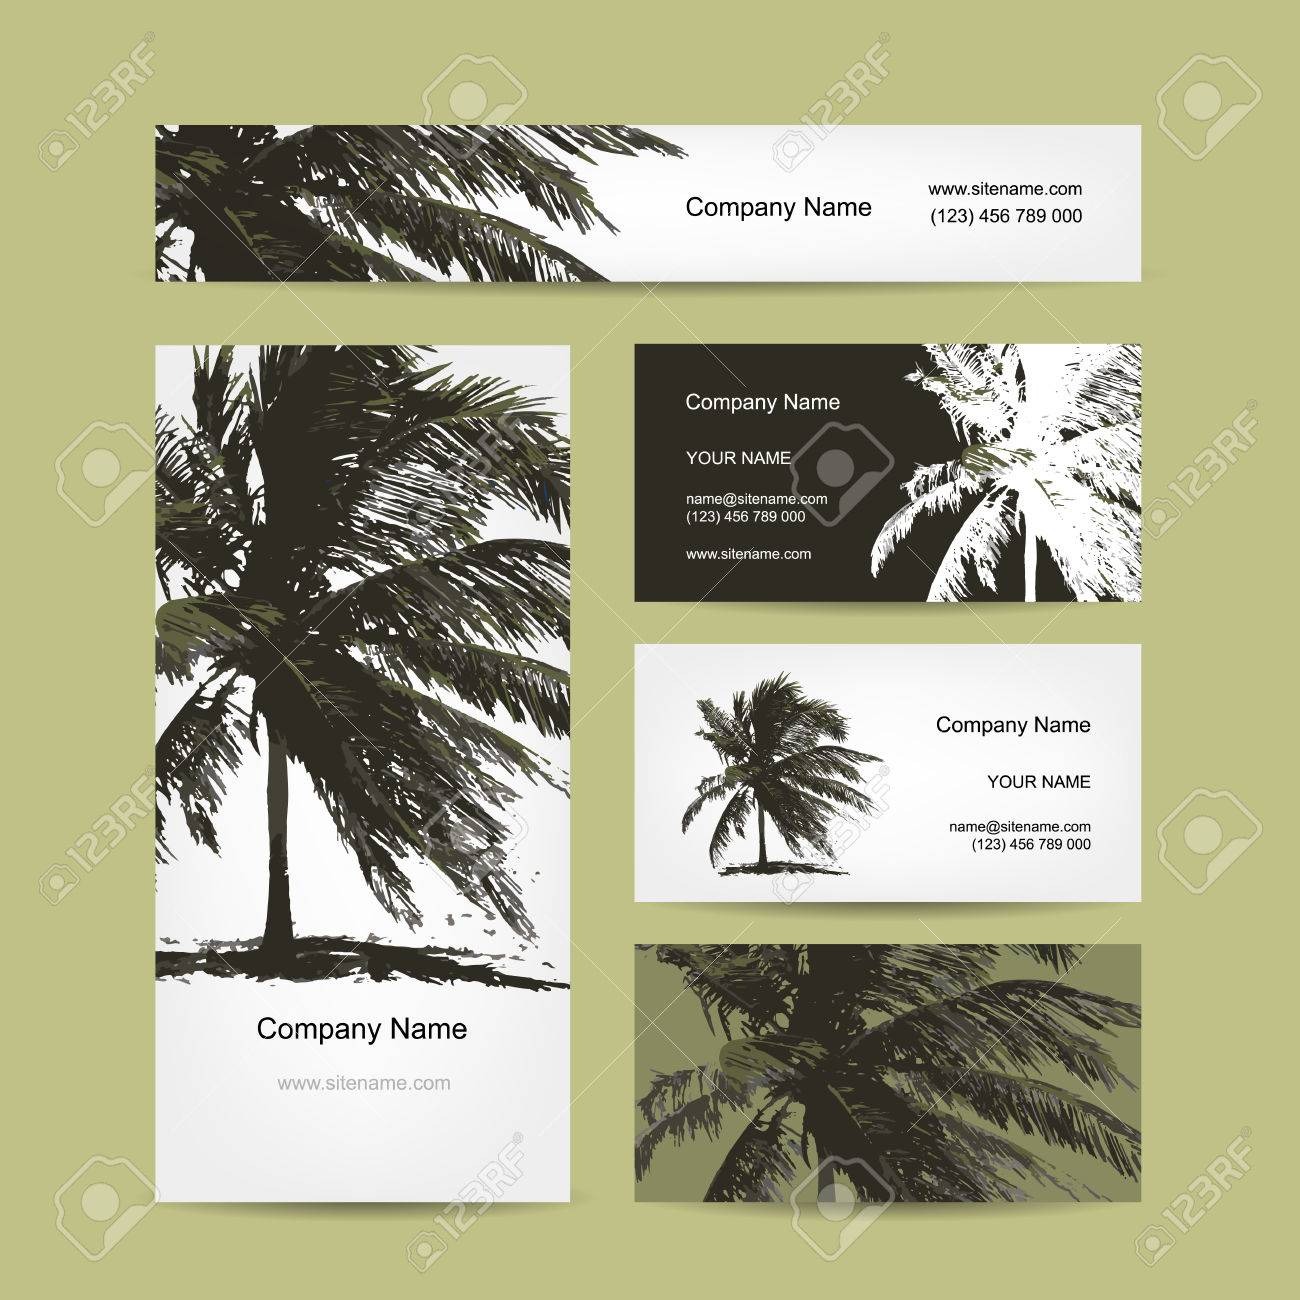 Business cards design with tropical palm tree vector illustration business cards design with tropical palm tree vector illustration stock vector 45320357 colourmoves